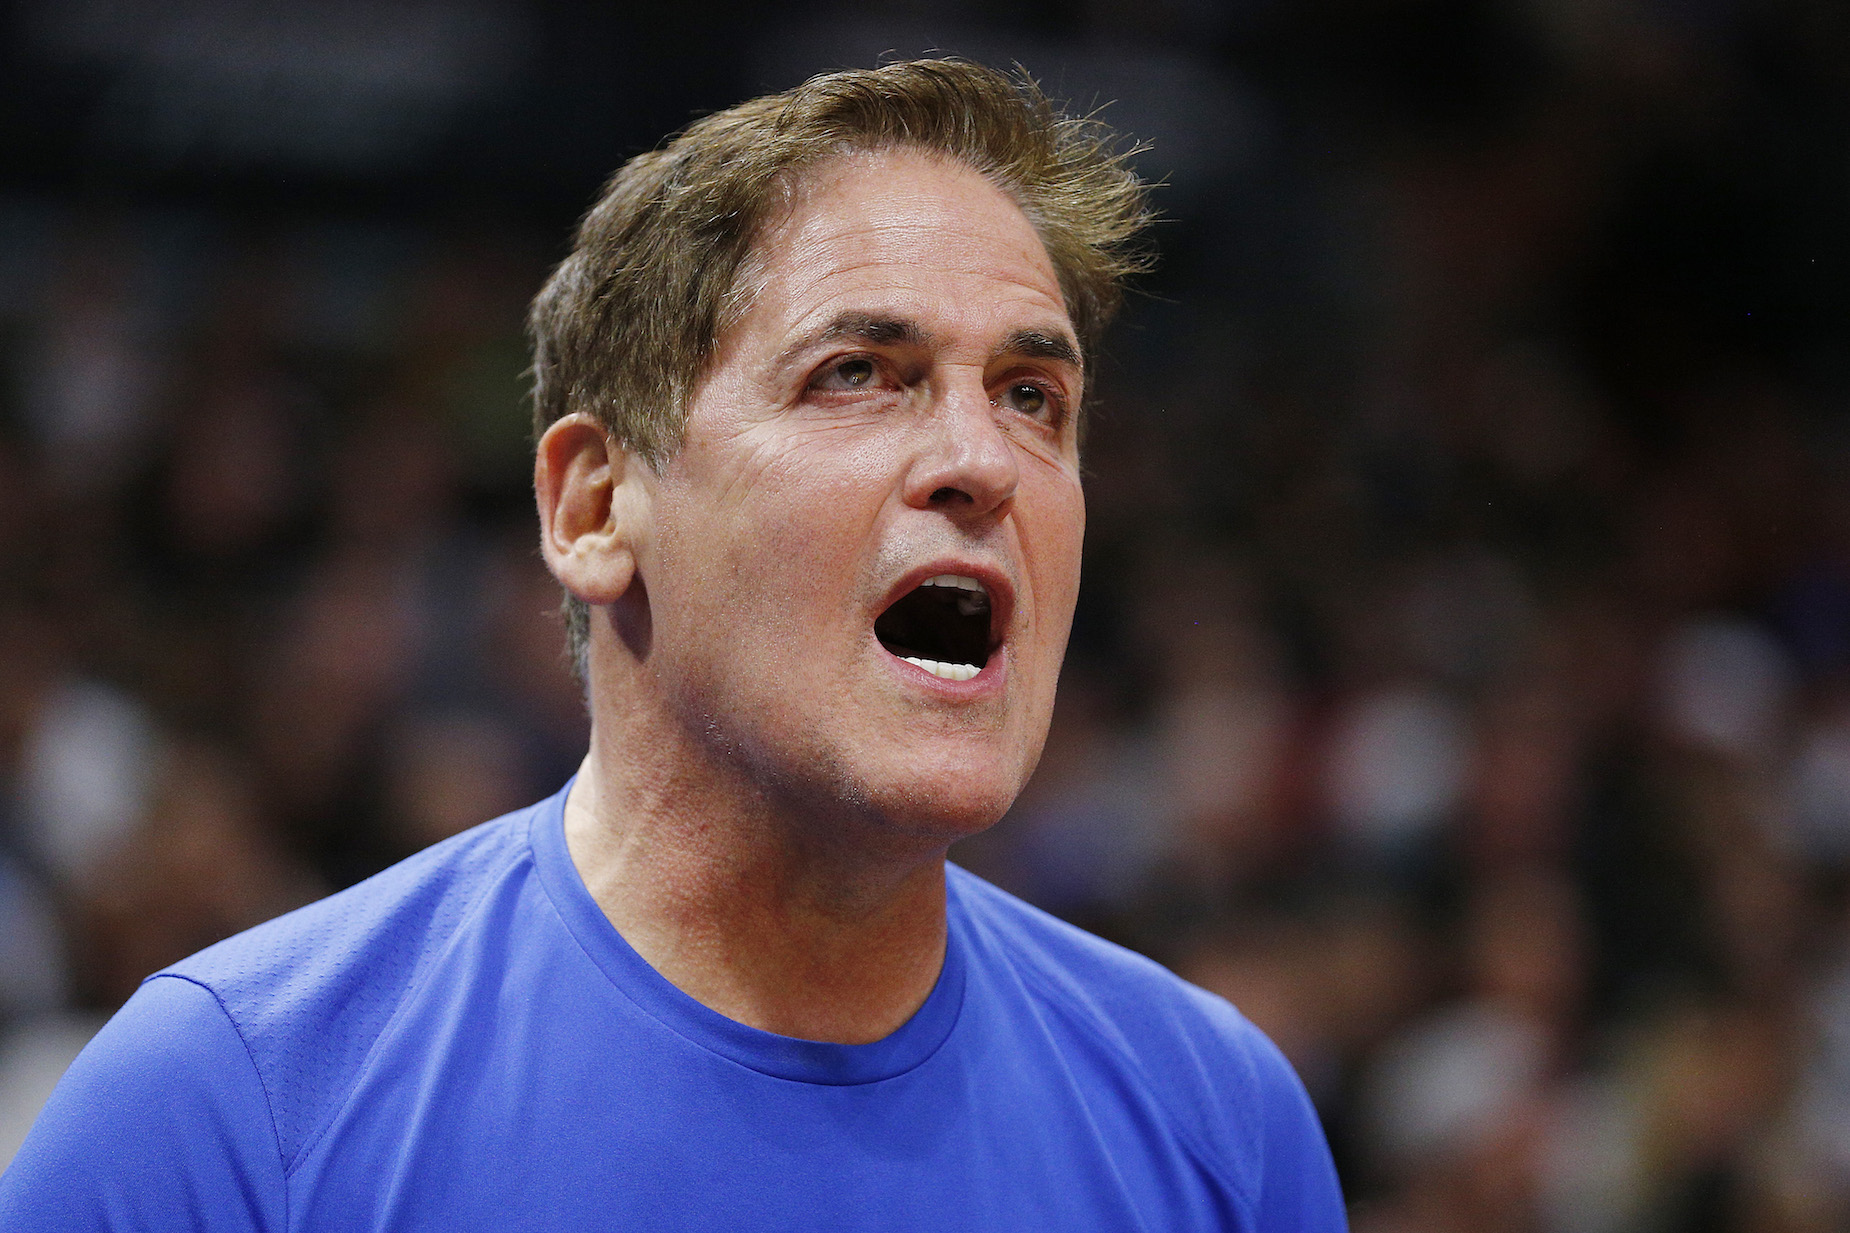 Dallas Mavericks owner Mark Cuban recently raise eyebrows with a comment about LeBron James.